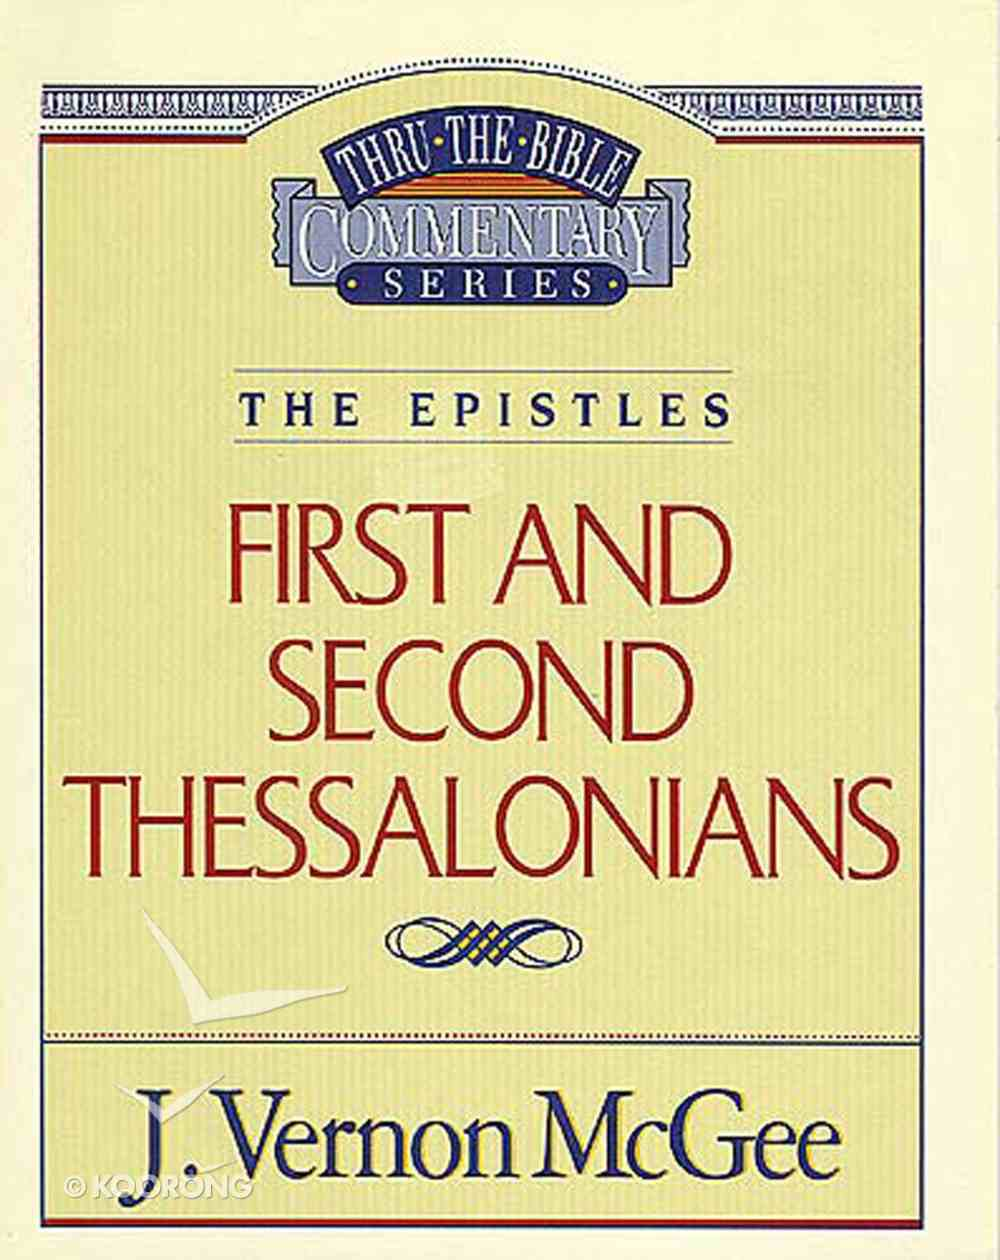 Thru the Bible NT #49: The Epistles (1 and 2 Thessalonians) (#49 in Thru The Bible New Testament Series) Paperback